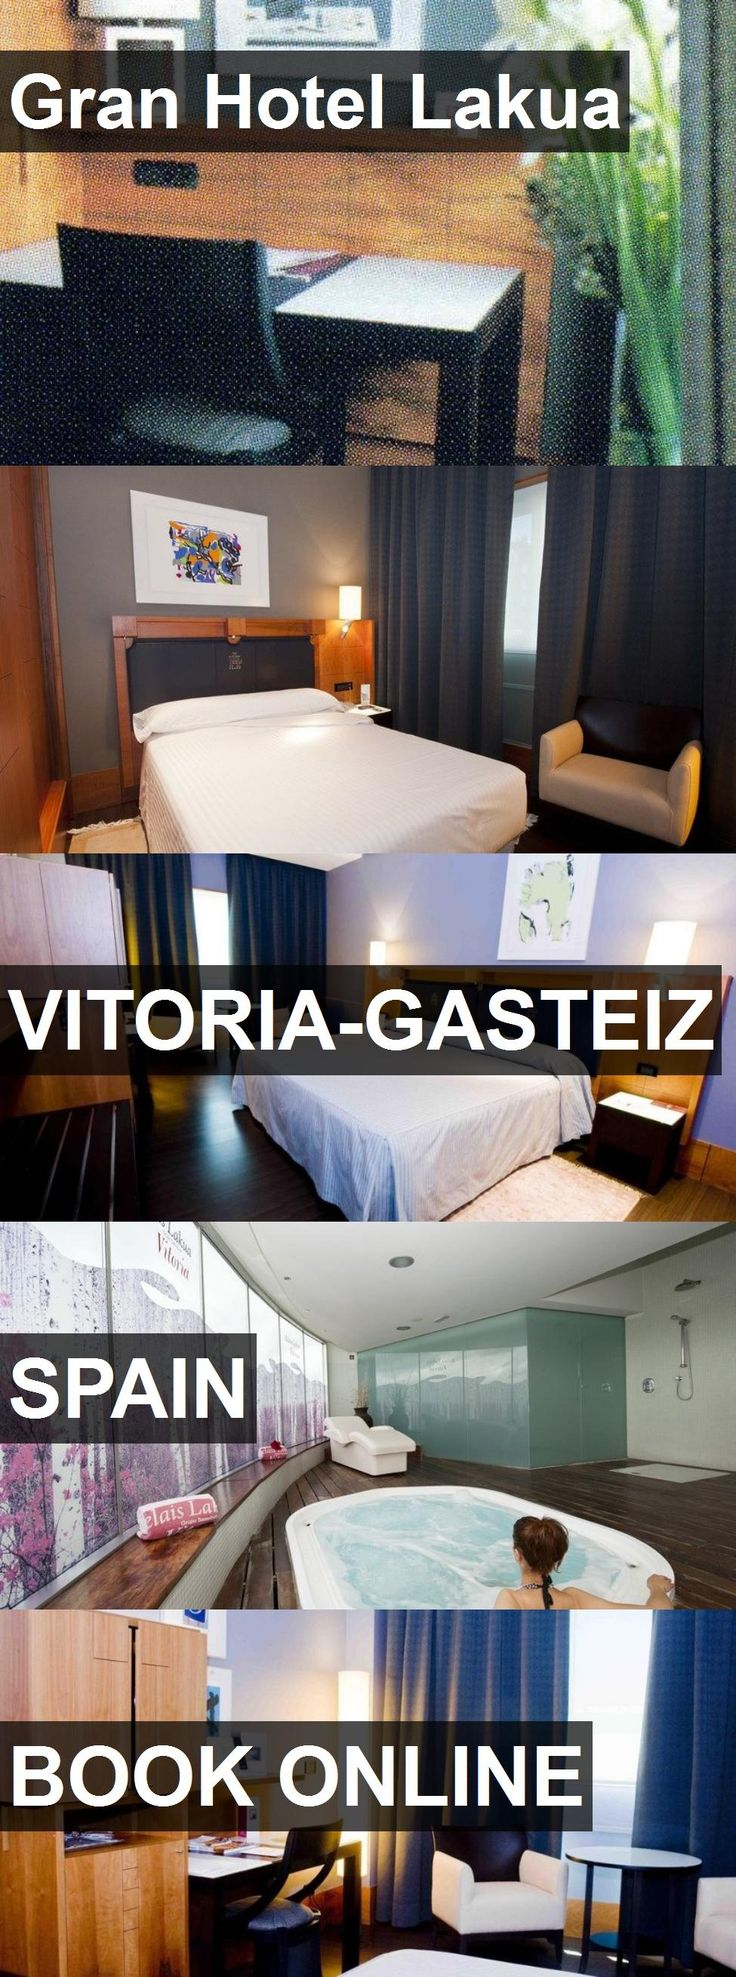 Gran Hotel Lakua in Vitoria-Gasteiz, Spain. For more information, photos, reviews and best prices please follow the link. #Spain #Vitoria-Gasteiz #travel #vacation #hotel